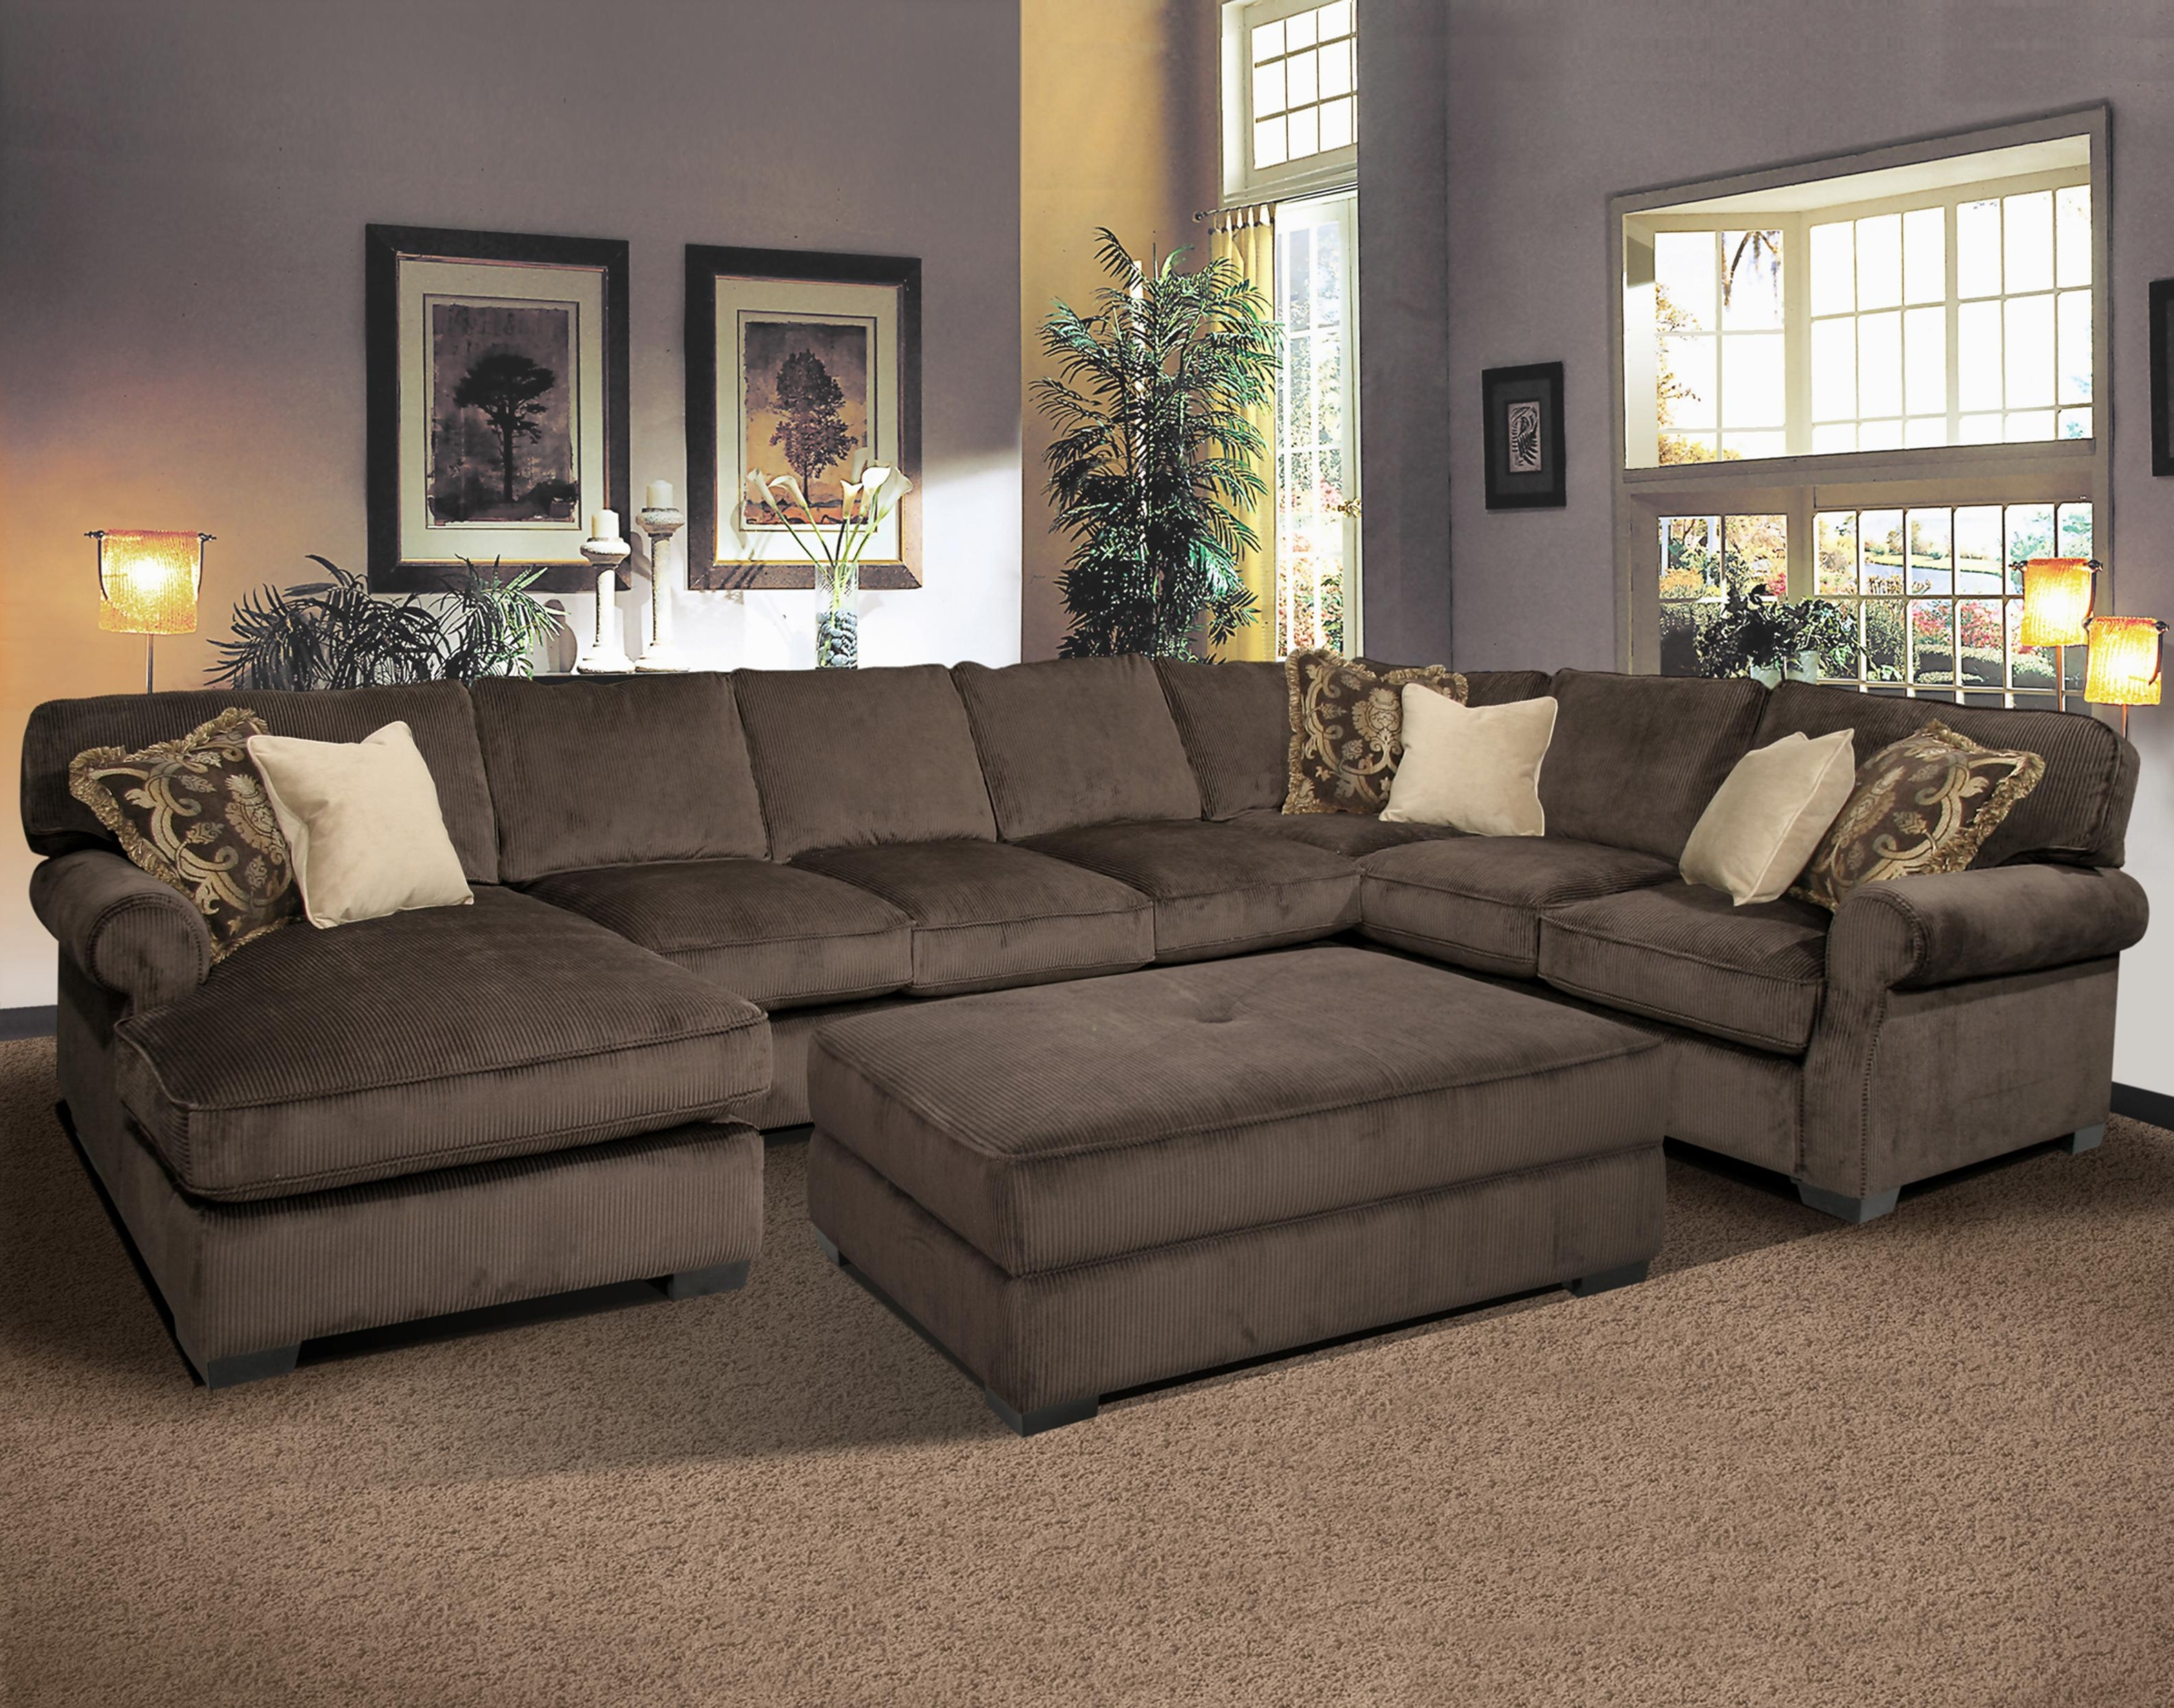 Sectional Couch With Recliner Ikea Couch Bed Large Leather With 2018 Big U Shaped Couches (View 2 of 20)